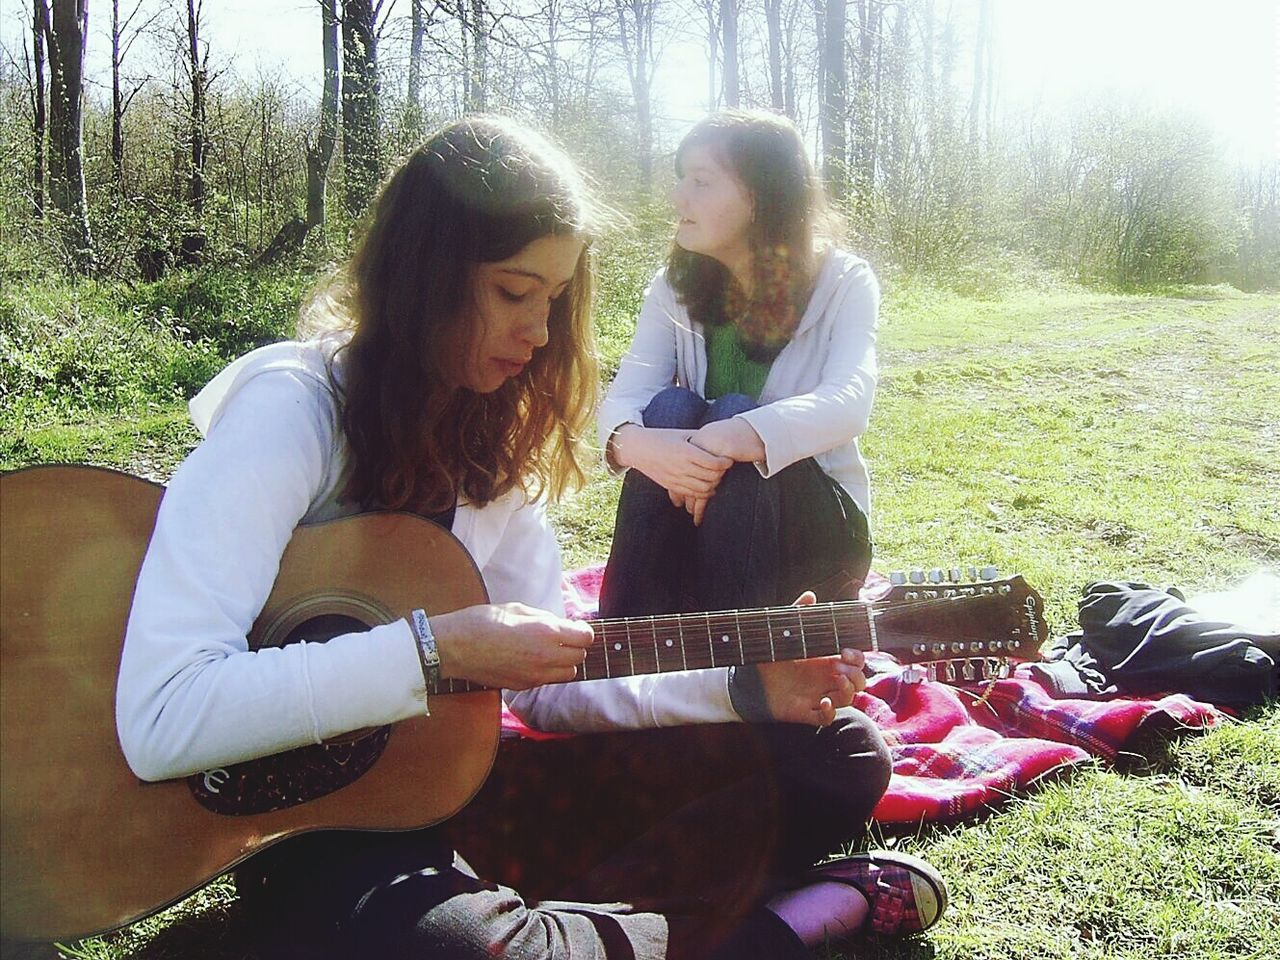 sitting, casual clothing, young women, guitar, leisure activity, real people, young adult, three quarter length, togetherness, tree, music, day, lifestyles, playing, two people, nature, grass, outdoors, musical instrument, relaxation, women, full length, plucking an instrument, smiling, musician, people